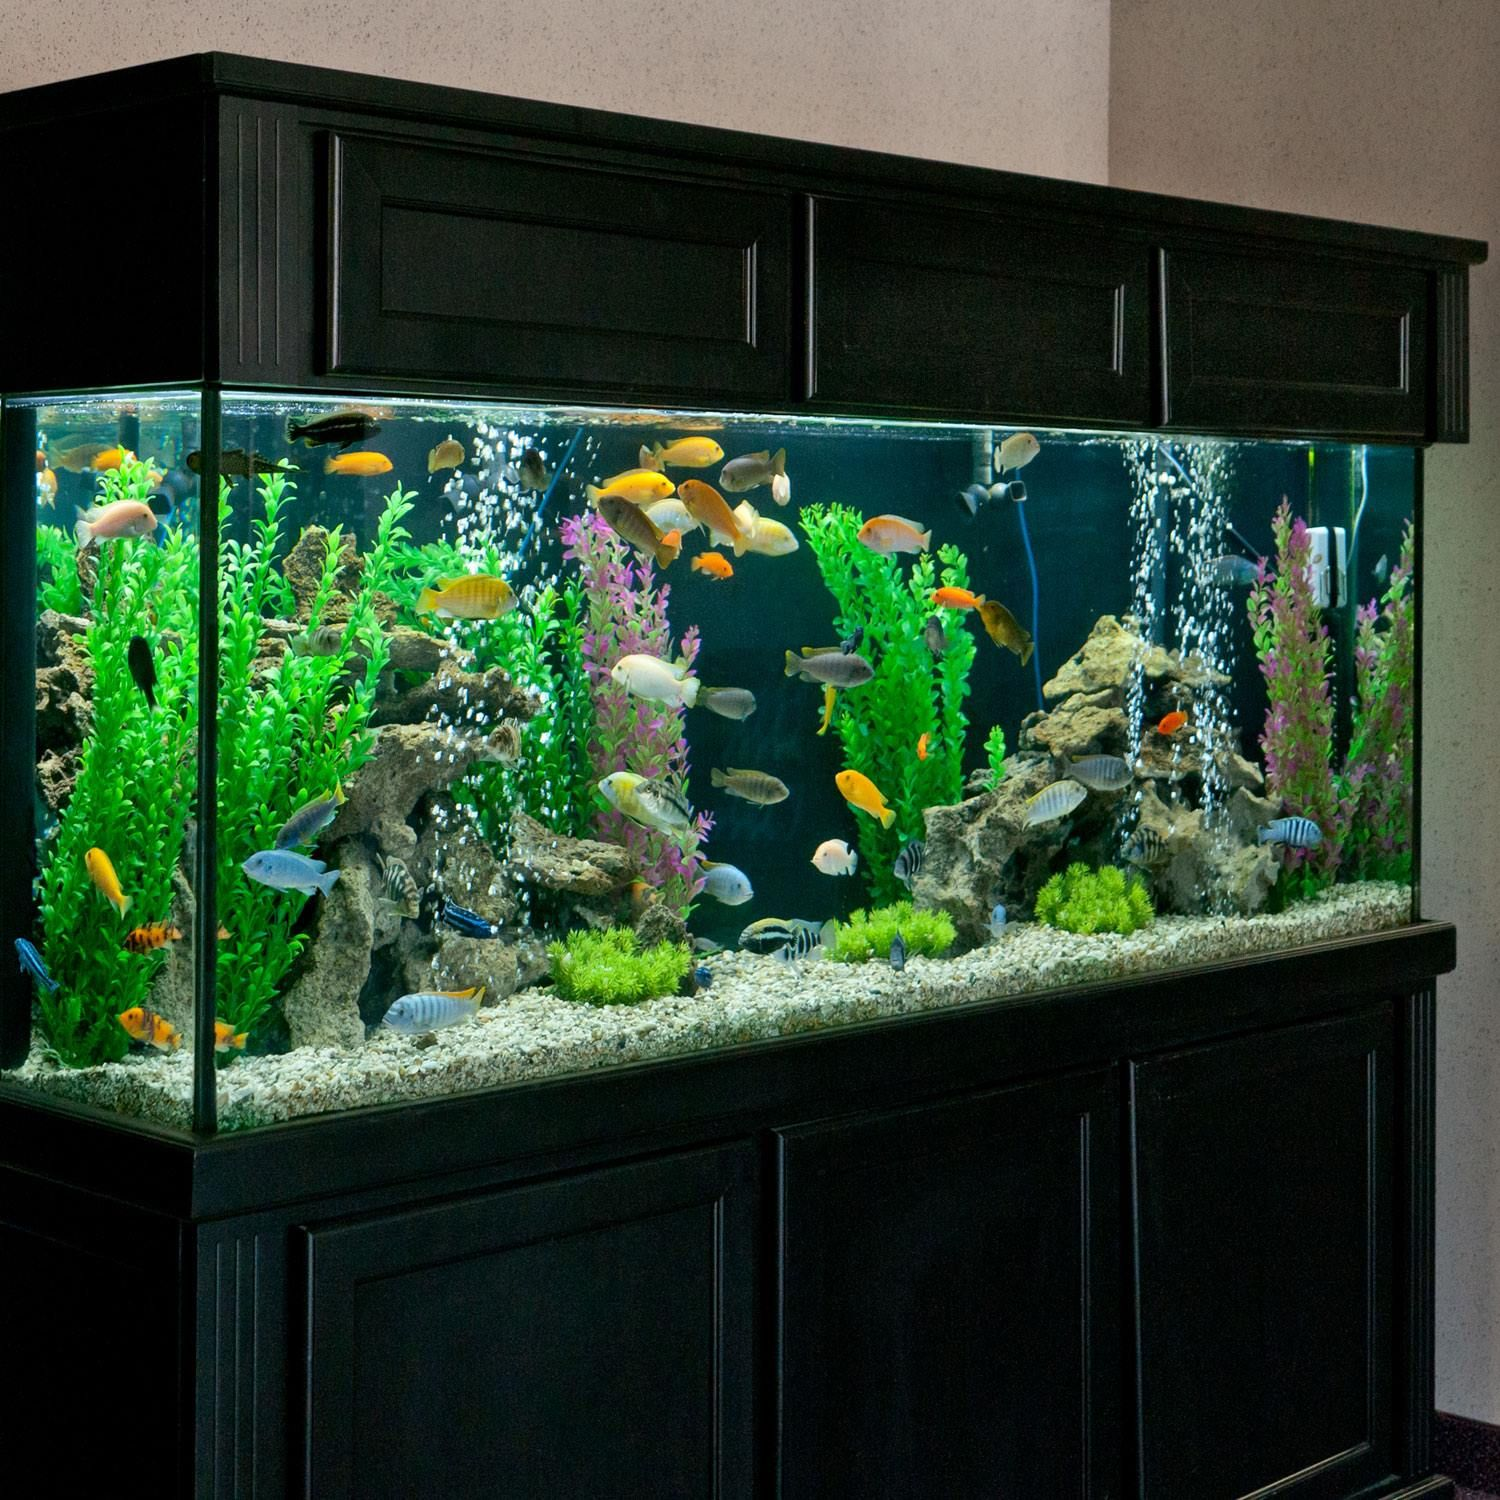 265 gallon african cichlid aquarium petsolutions for Aquarium fish online